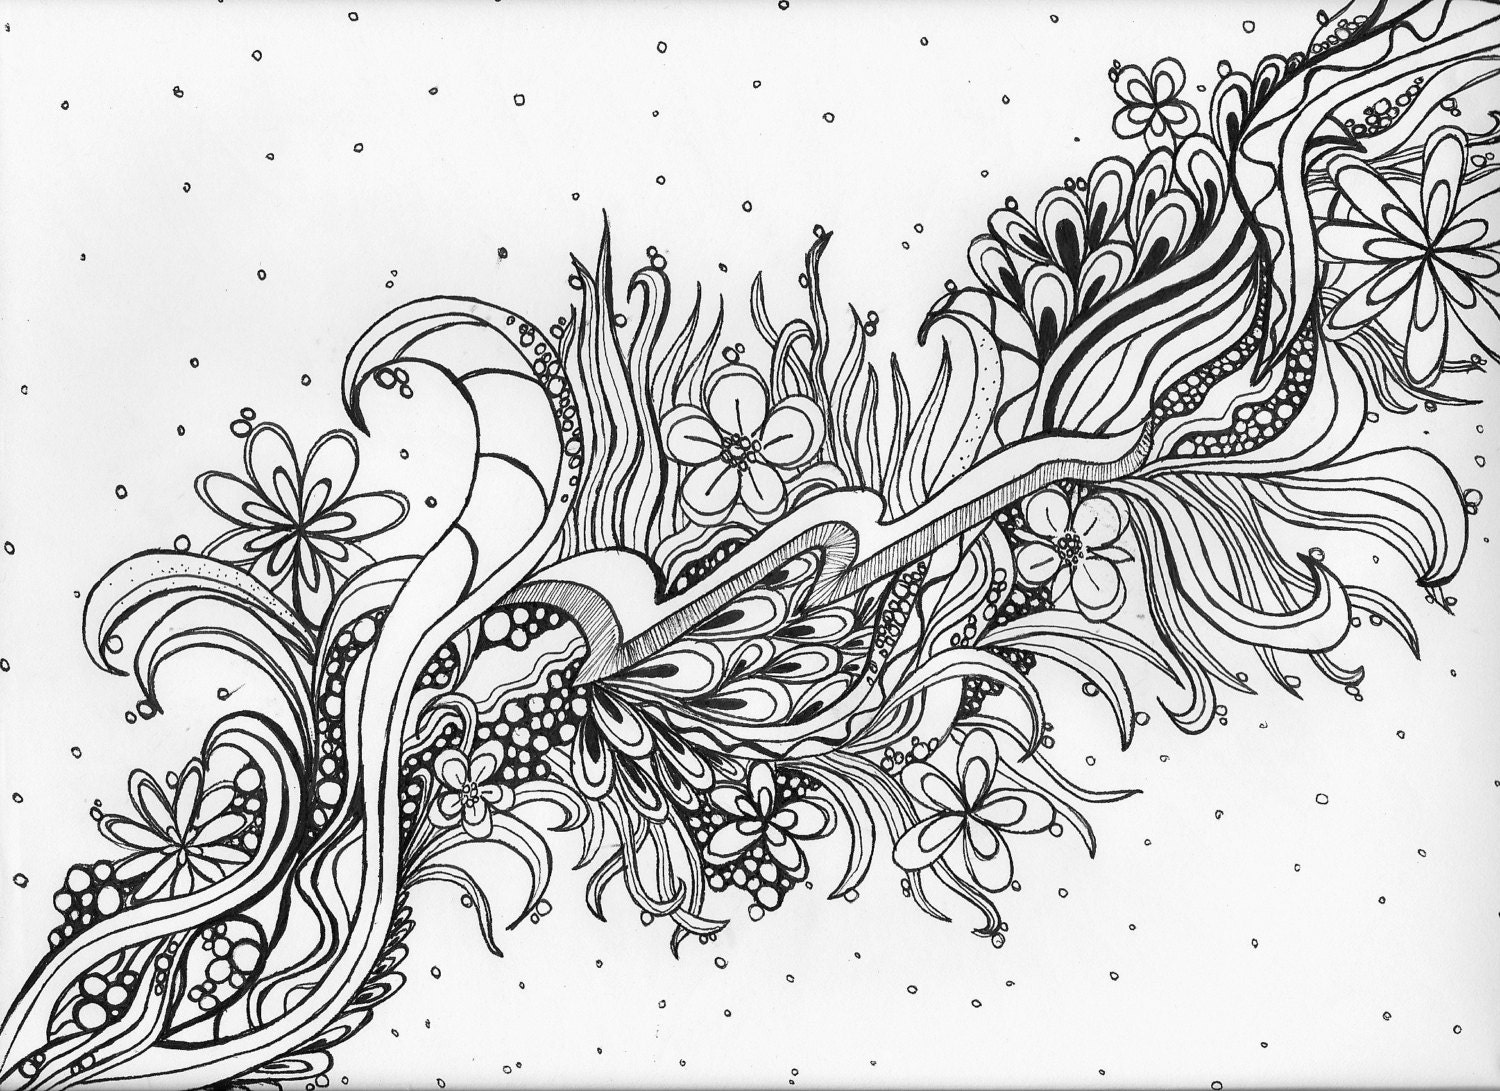 Adult coloring pagezen doodle artwall artoriginal hand drawnprintable wall artprintable coloring page at designs by willowcreek on etsy